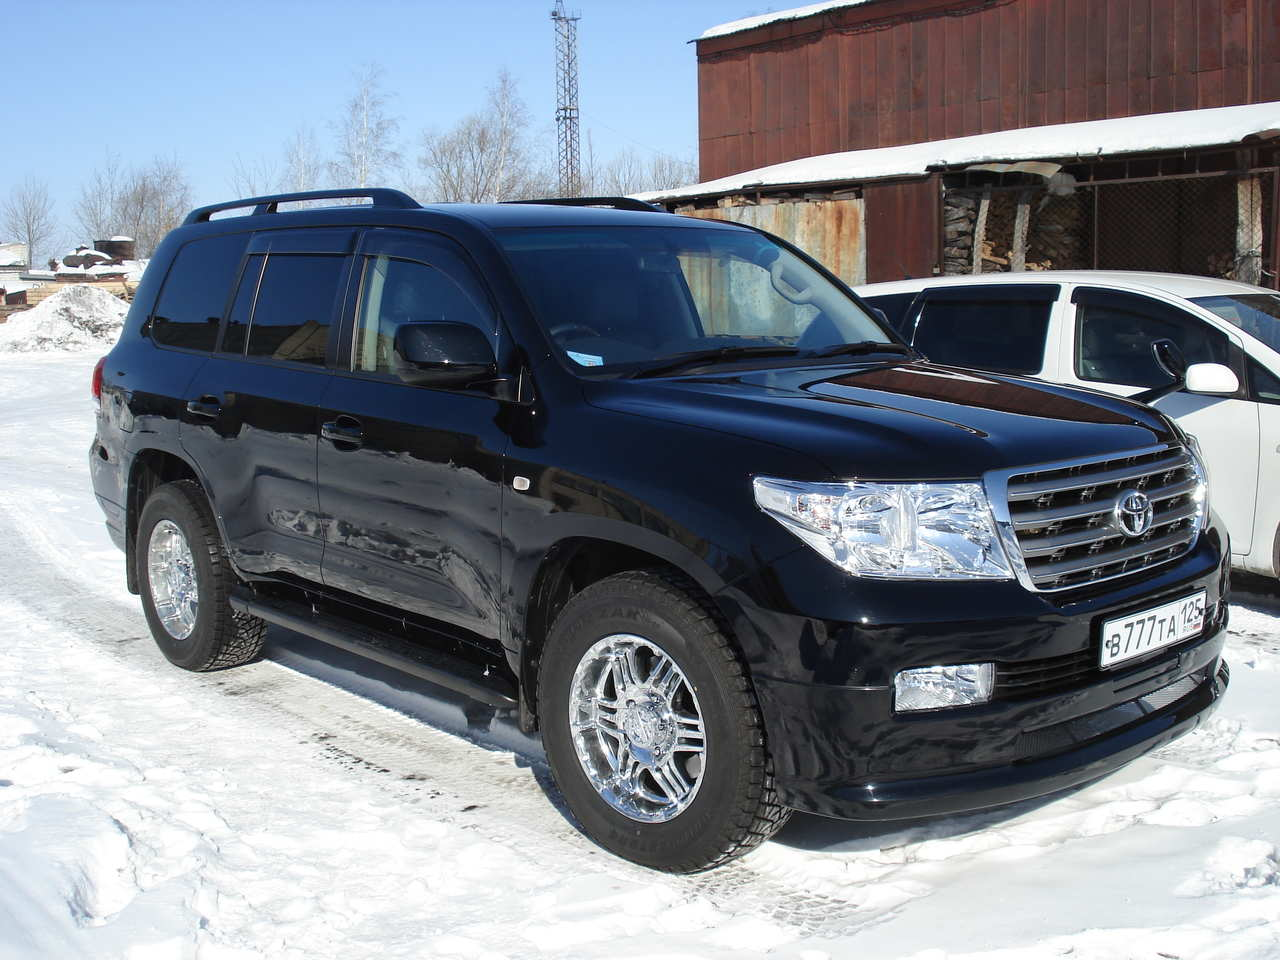 used 2008 toyota land cruiser photos 4700cc gasoline automatic for sale. Black Bedroom Furniture Sets. Home Design Ideas